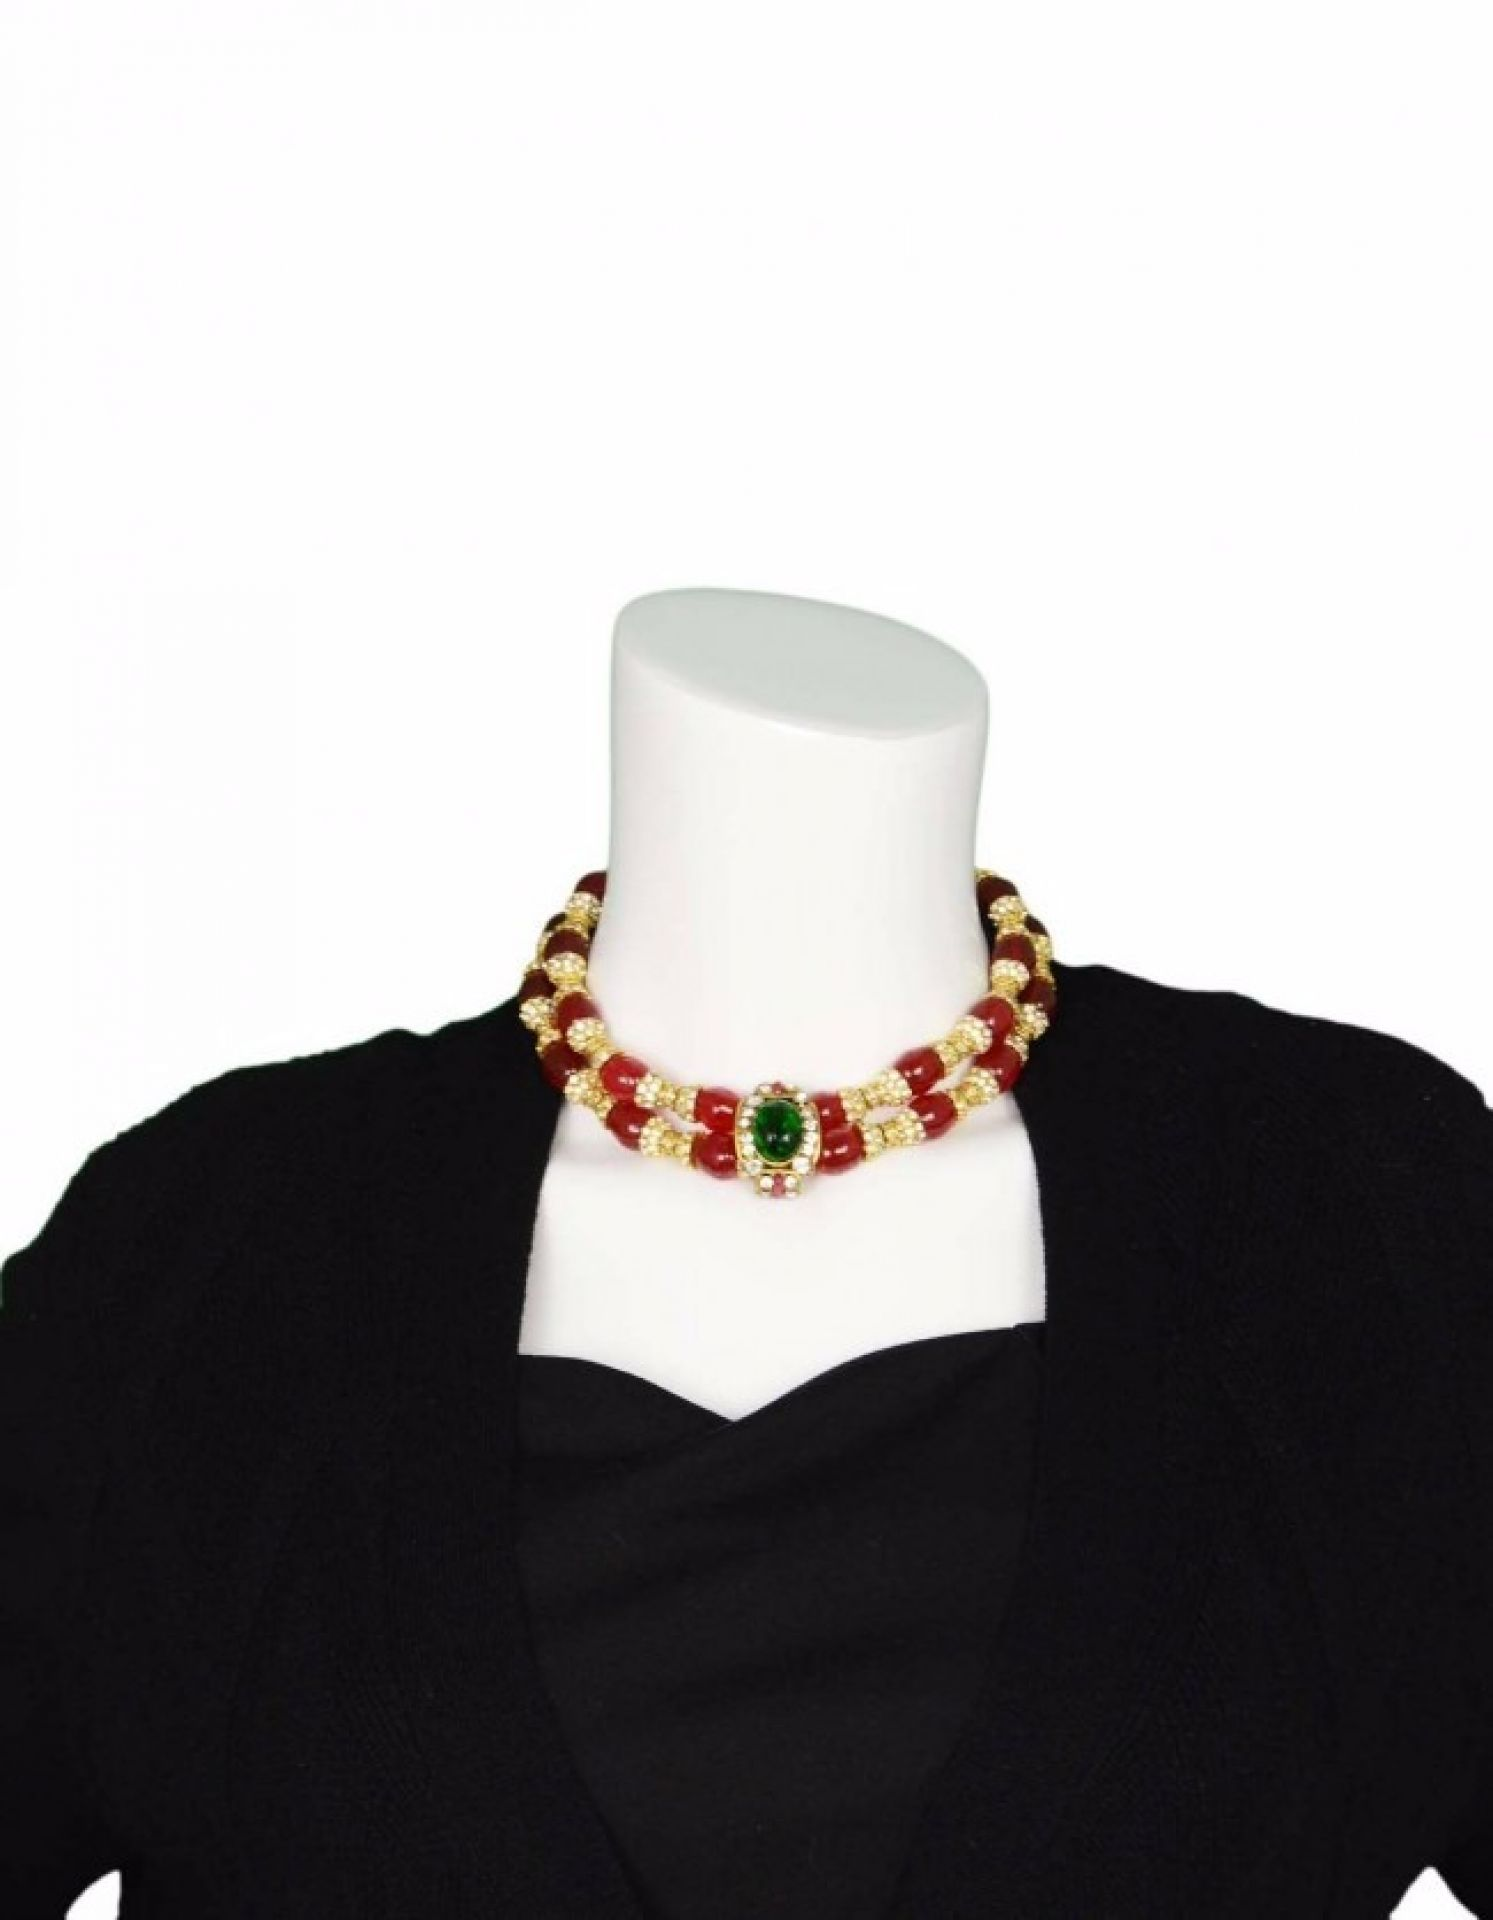 CHANEL Vintage '83 Red Gripoix and Rhinestone Double Tier Necklace